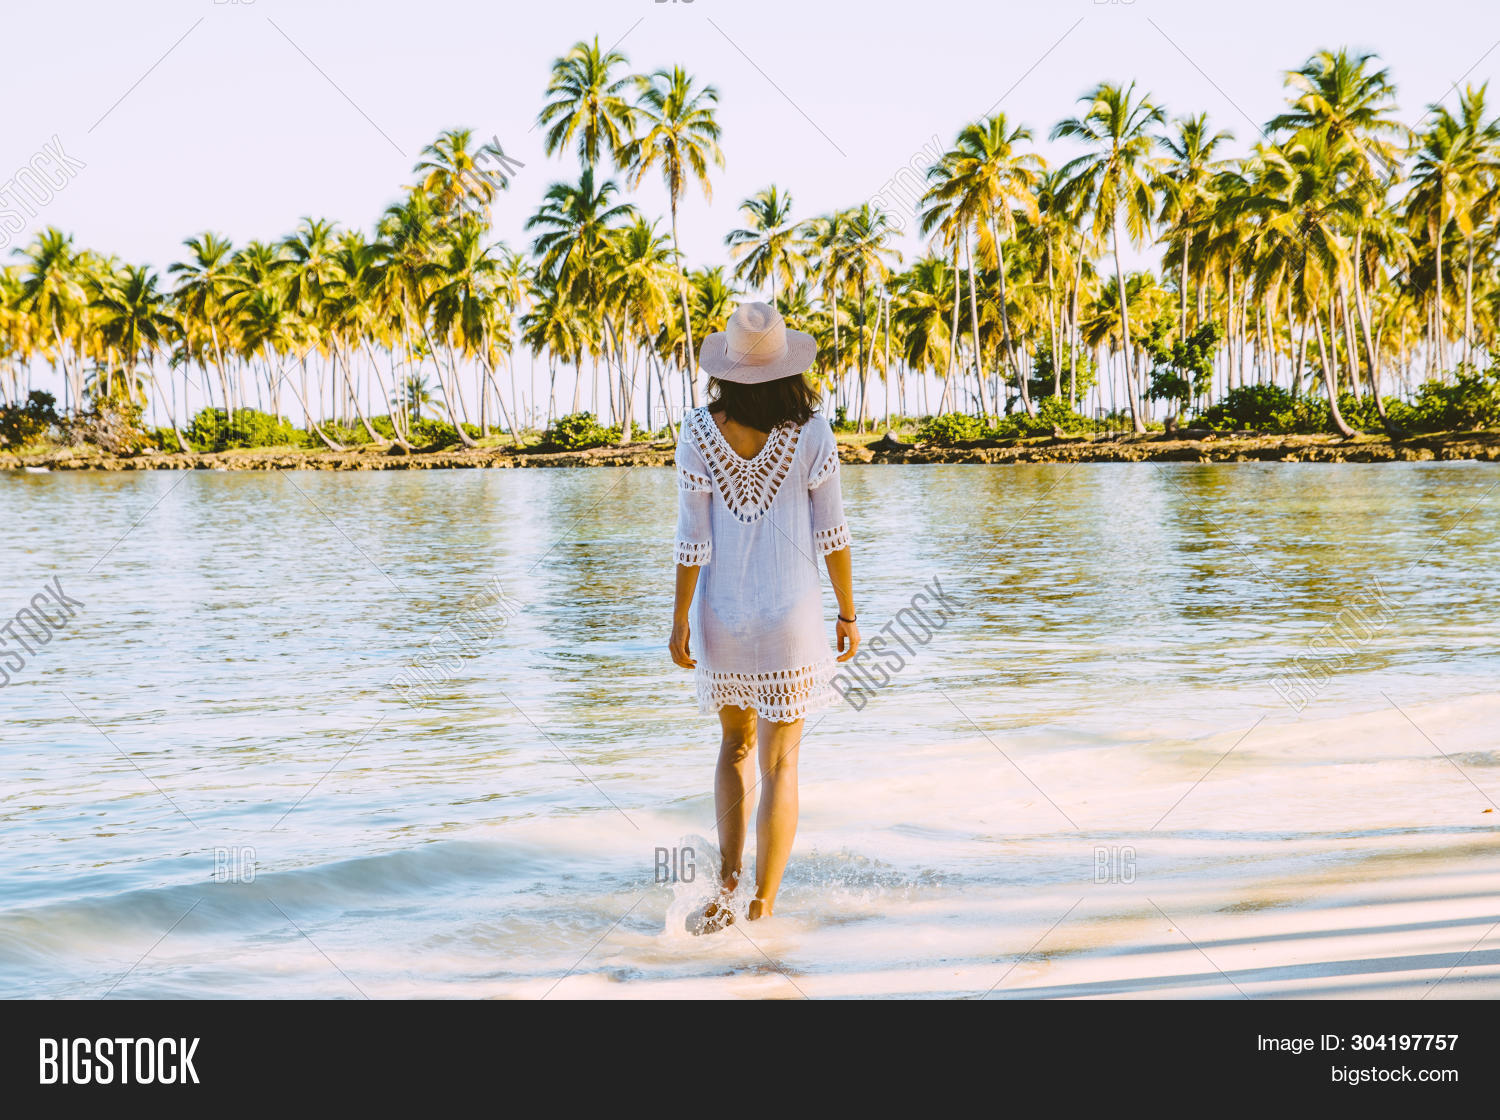 alone,attractive,background,beach,beautiful,daylight,dominican,dreamlike,enjoyment,fashion,fashionable,freedom,fresh,galeras,girl,hat,holidays,hot,idyllic,landscape,las,legs,light,loneliness,looking,model,natural,nature,ocean,outdoor,relaxation,republic,sand,scenery,sexy,shore,solitude,summer,sunlight,tourism,travel,traveler,tropical,tropics,turquoise,vacation,warm,white,woman,zen